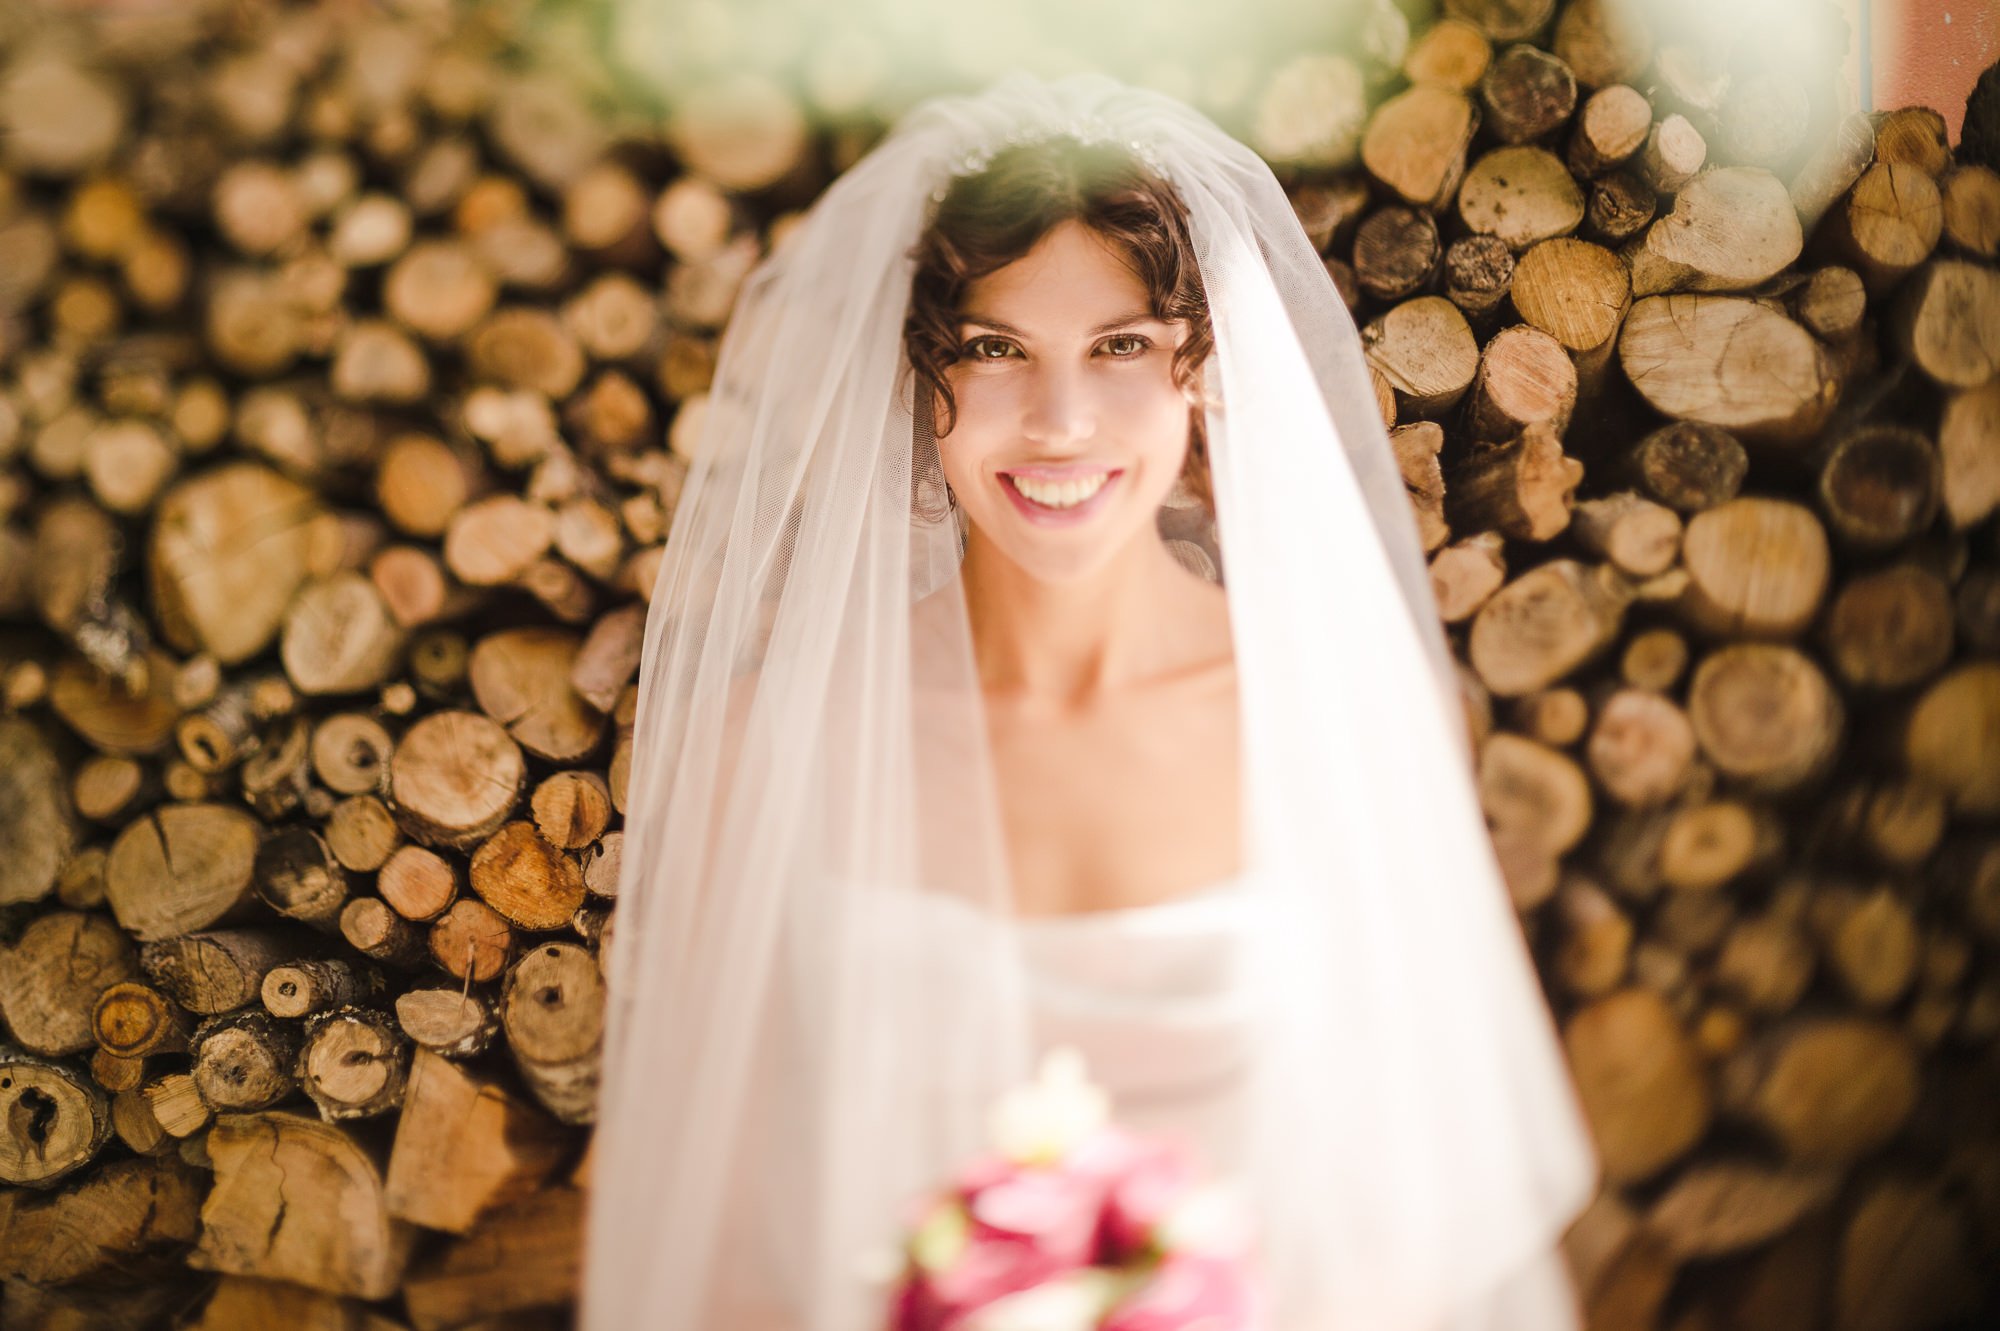 36 freelensed portrait of bride in front of logs auckland wedding.JPG